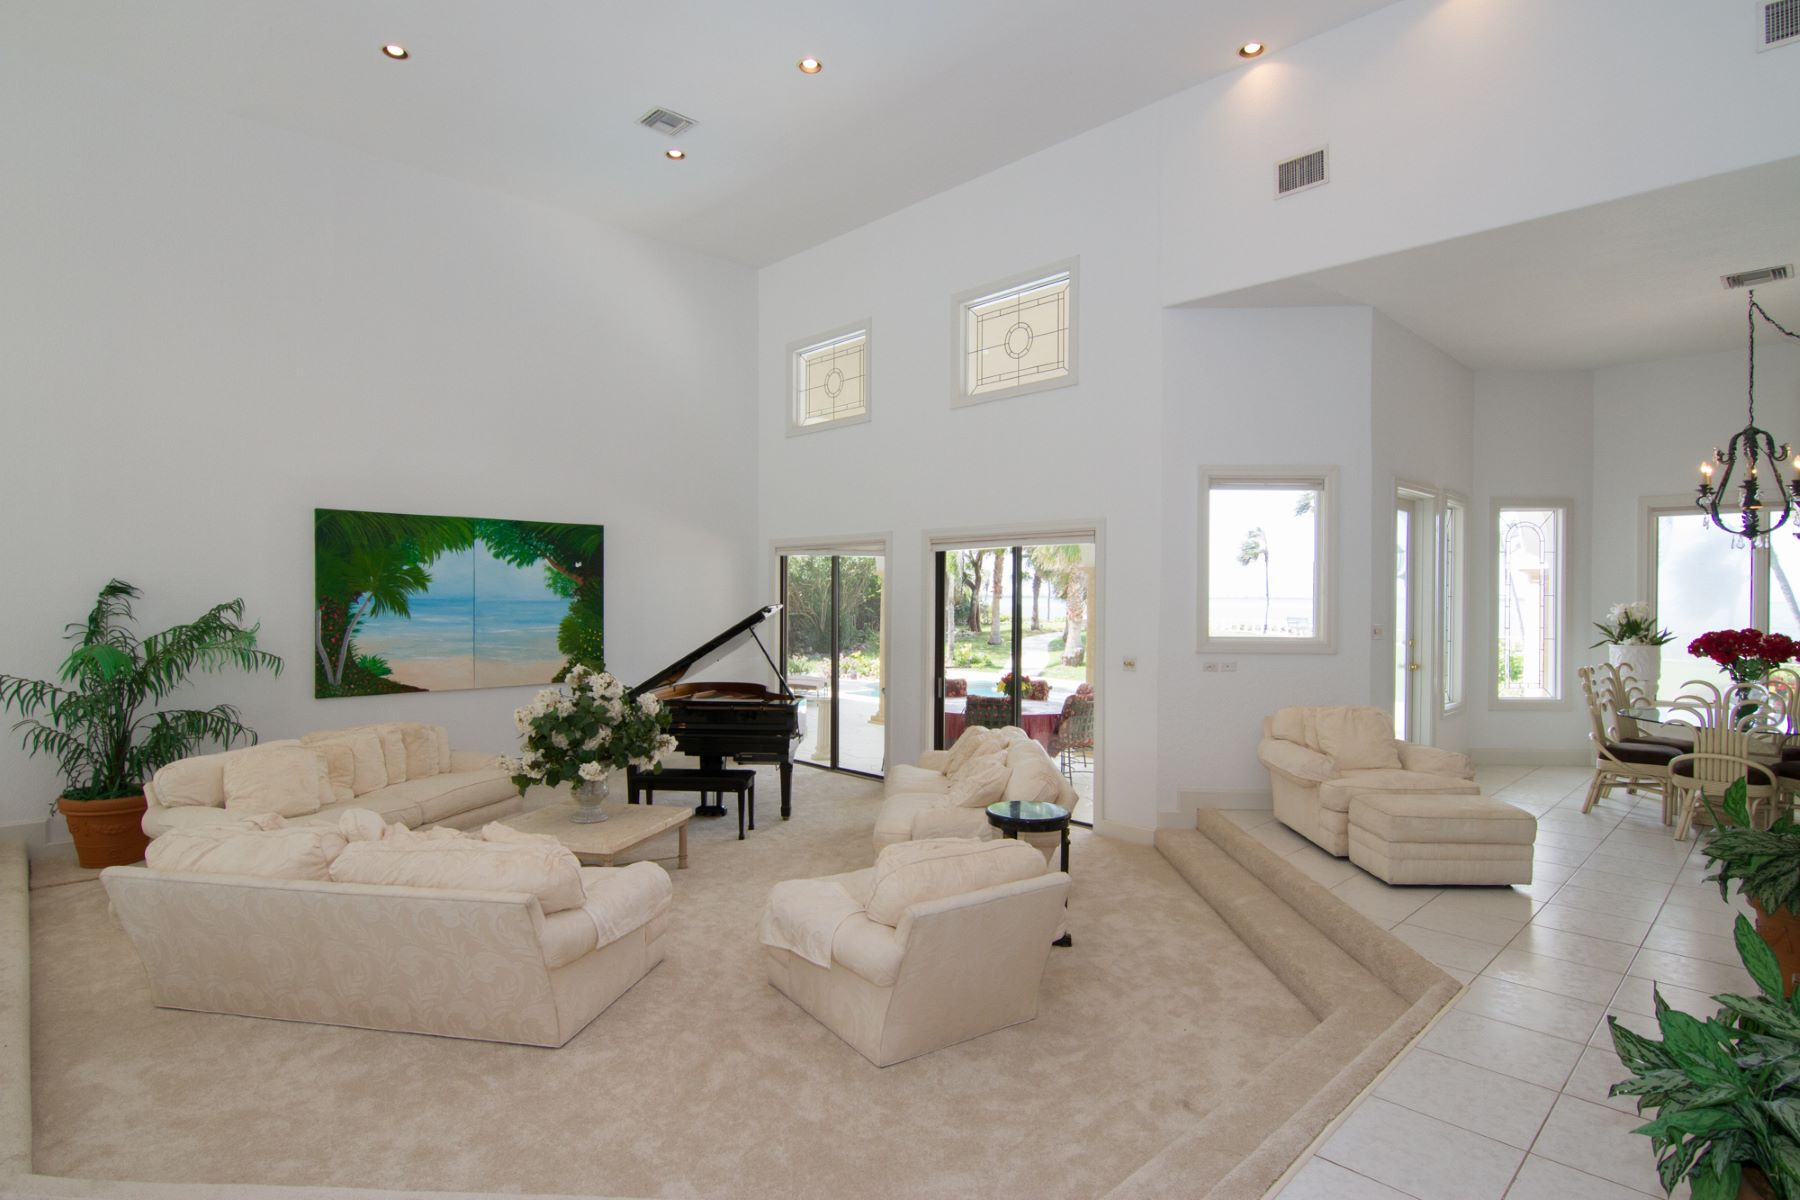 Single Family Home for Rent at Luxurious ocean front villa West Bay, Cayman Islands